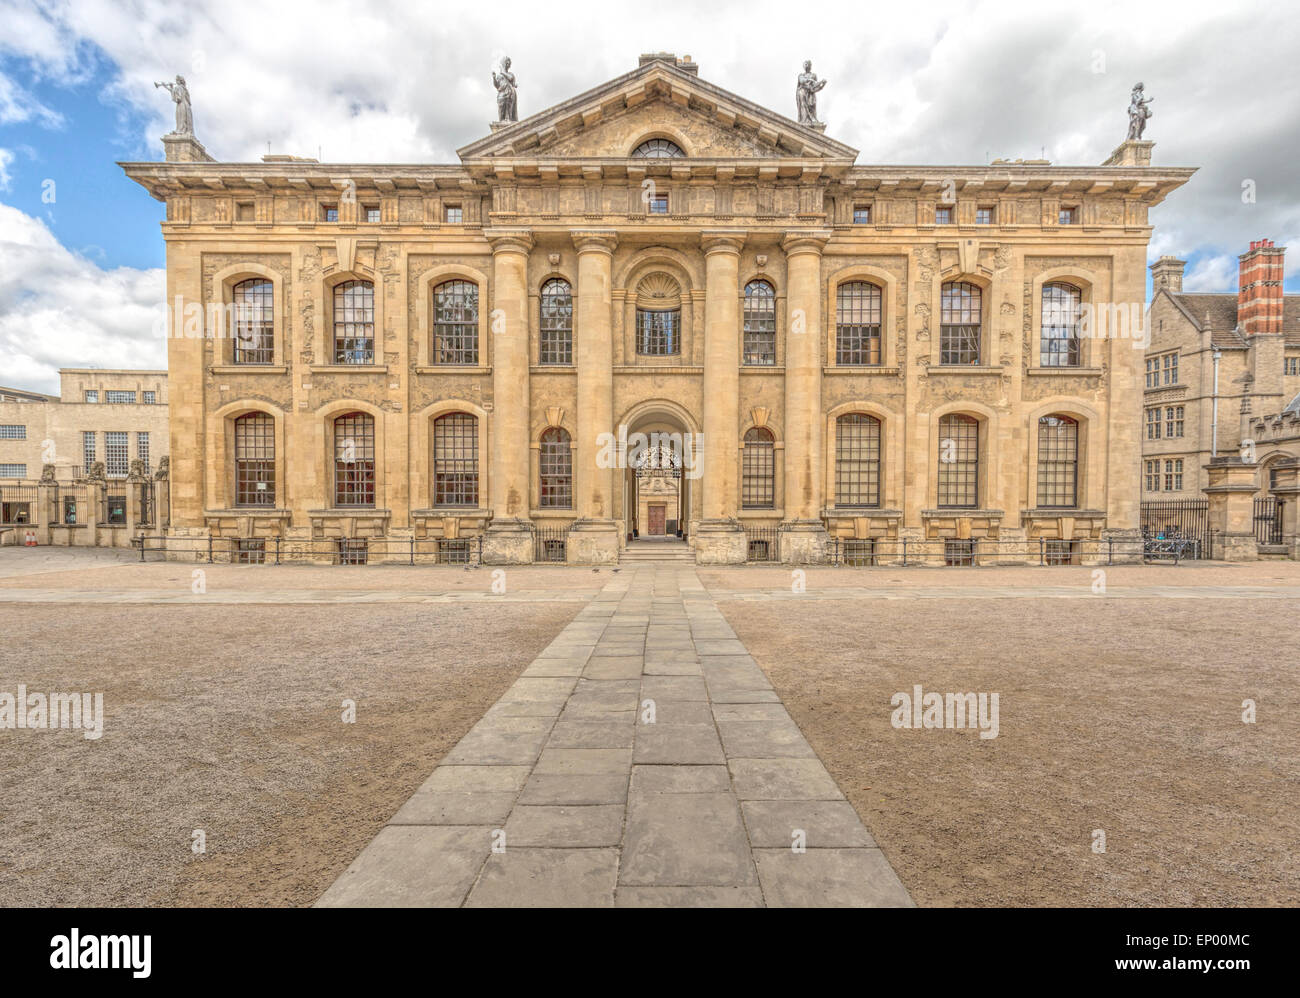 View on the Clarendon Building, an early 18th-century neoclassical building of the University of Oxford, England, Stock Photo